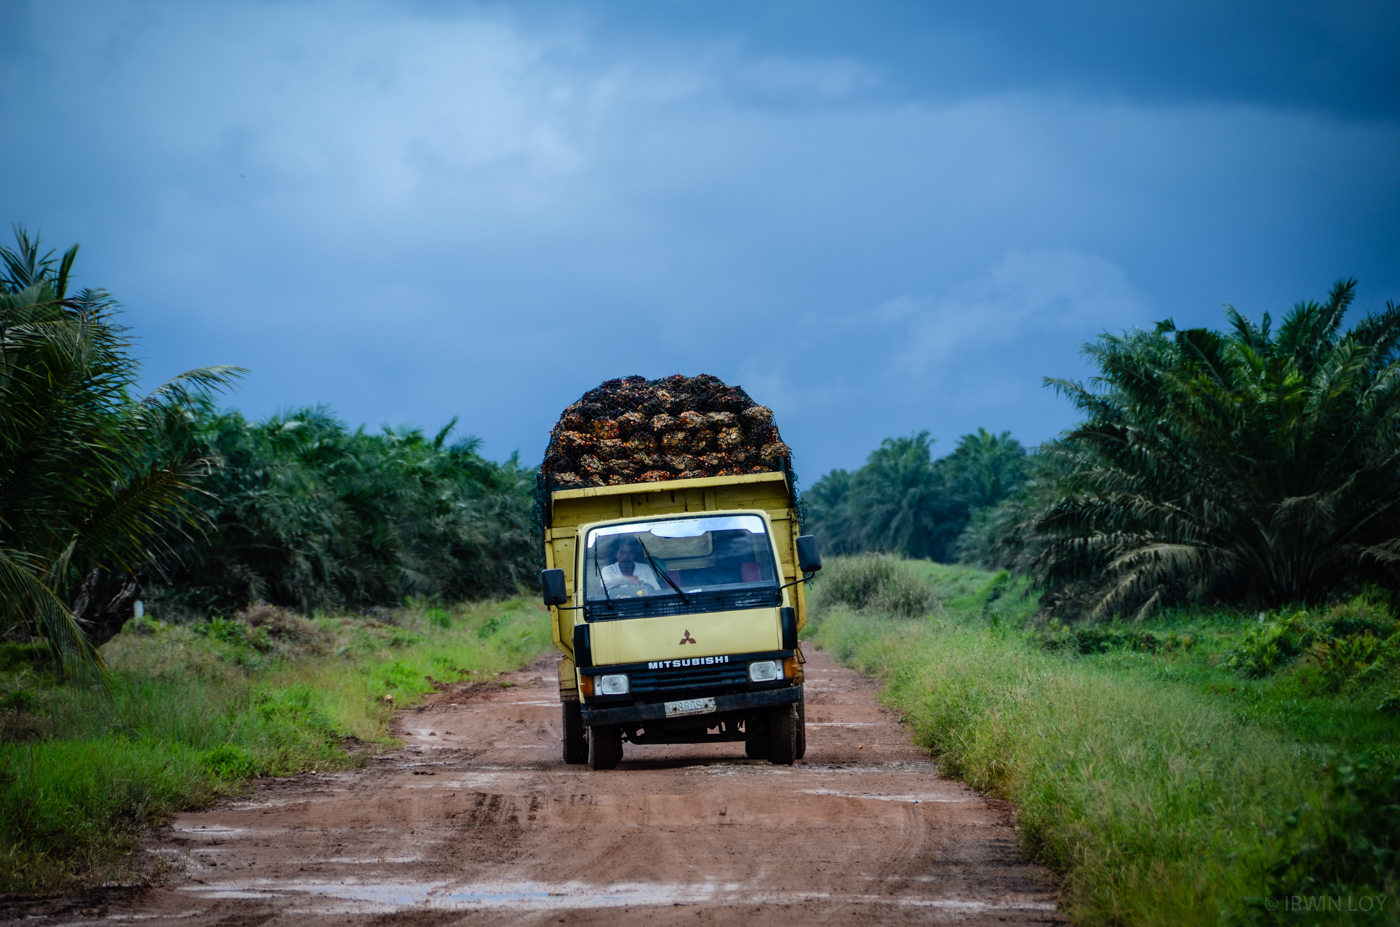 Vast swathes of land around Dayak villages are occupied by palm oil plantations.